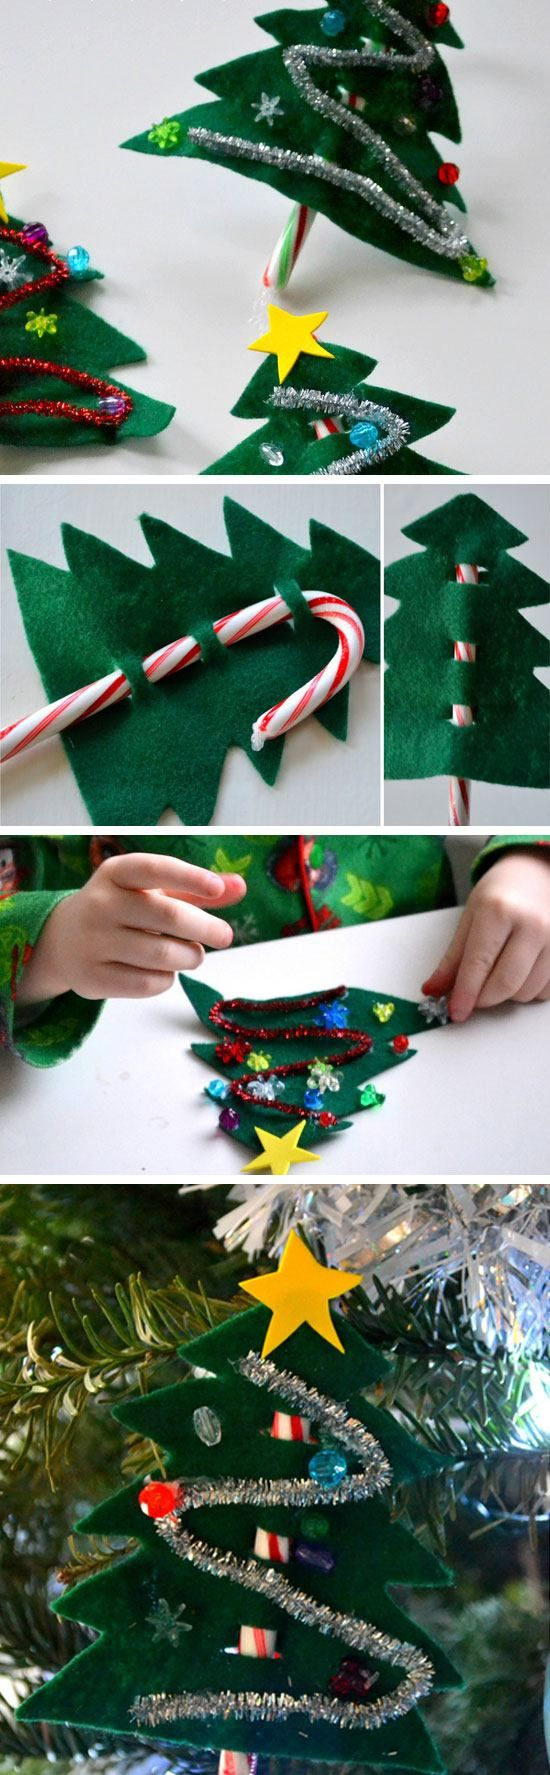 Drama christmas ornaments - 26 Super Easy Christmas Crafts For Kids To Make